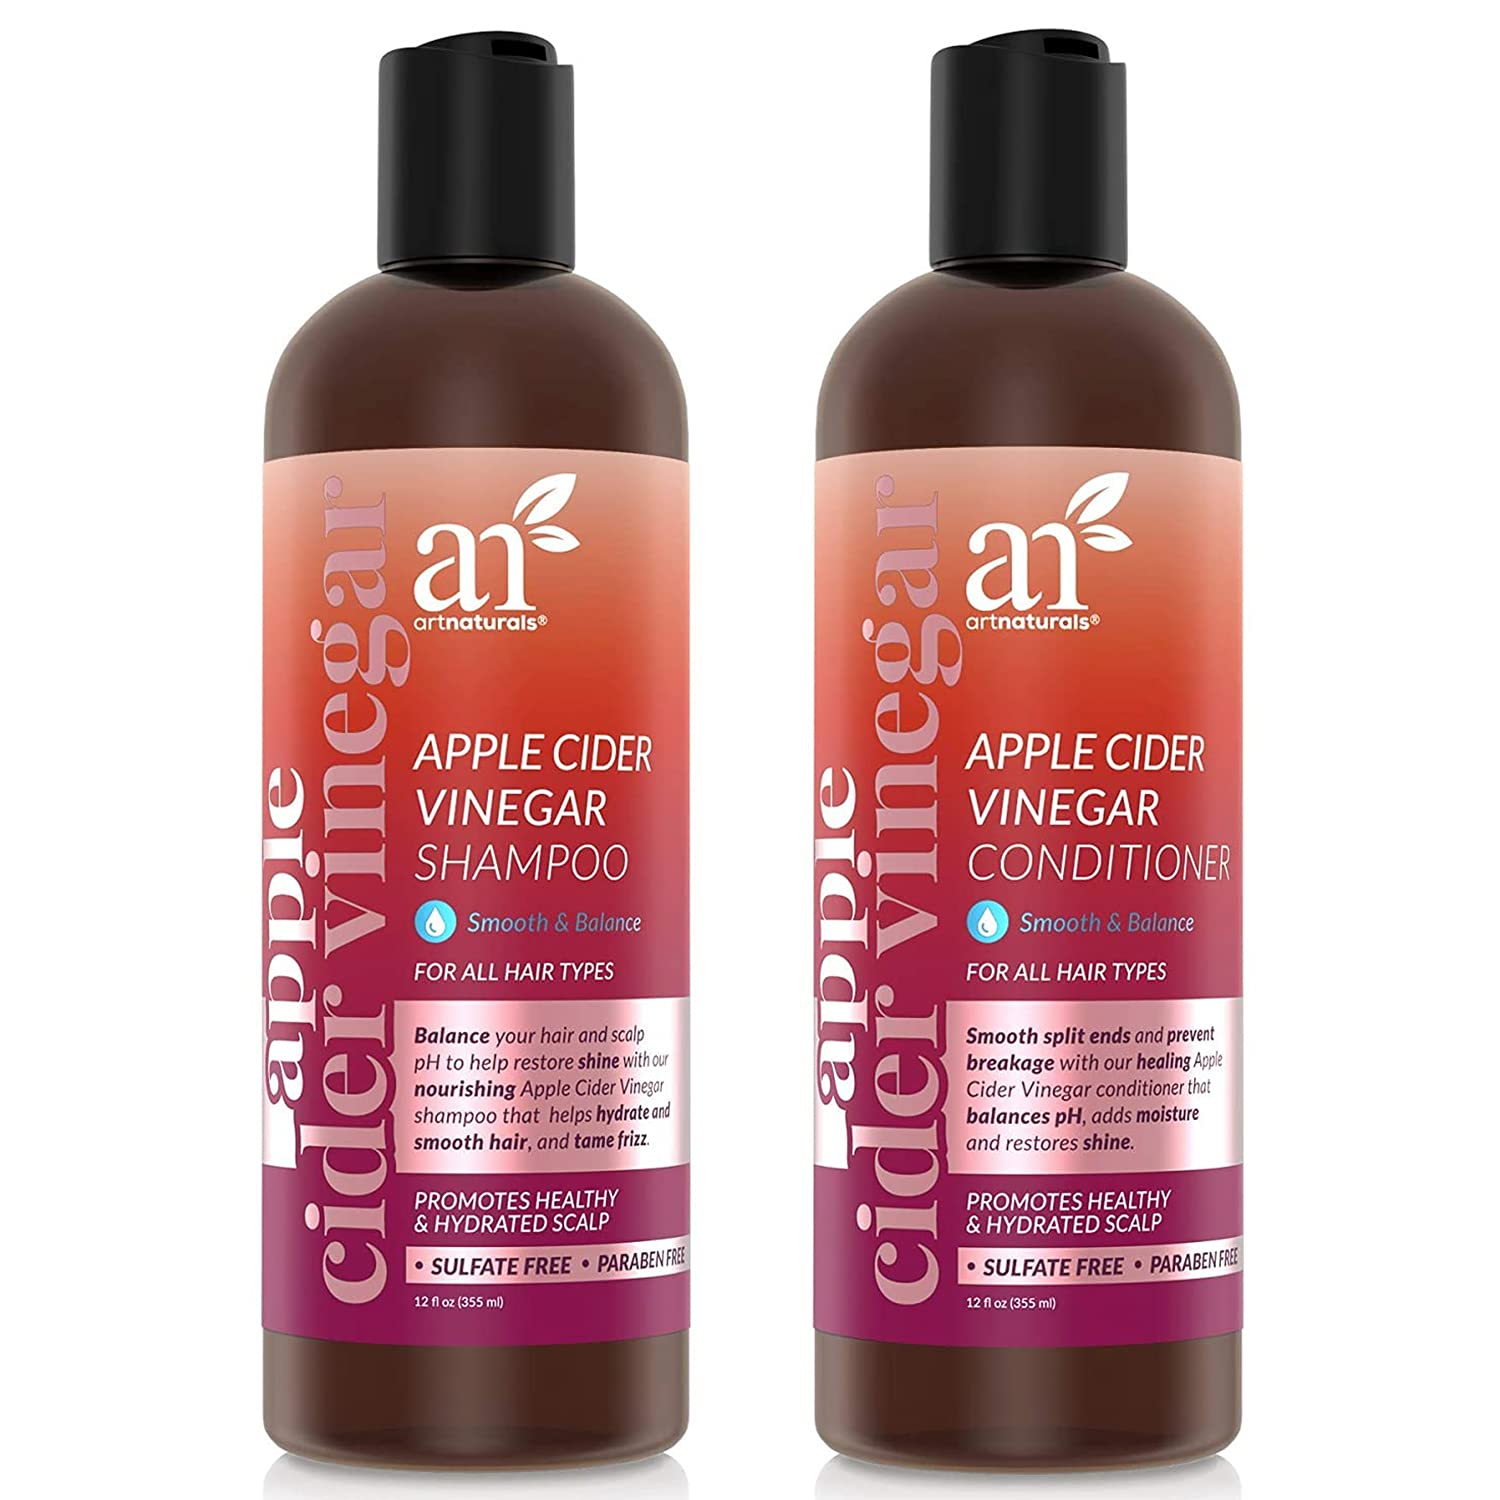 ArtNaturals Apple Cider Vinegar Shampoo and Conditioner Set - (2 x 12 Fl Oz / 355ml) for All Hair Types - Plant Base Blend - Coconut Oil and Vitamin E for Split Ends, Shine, Stronger and Smoother